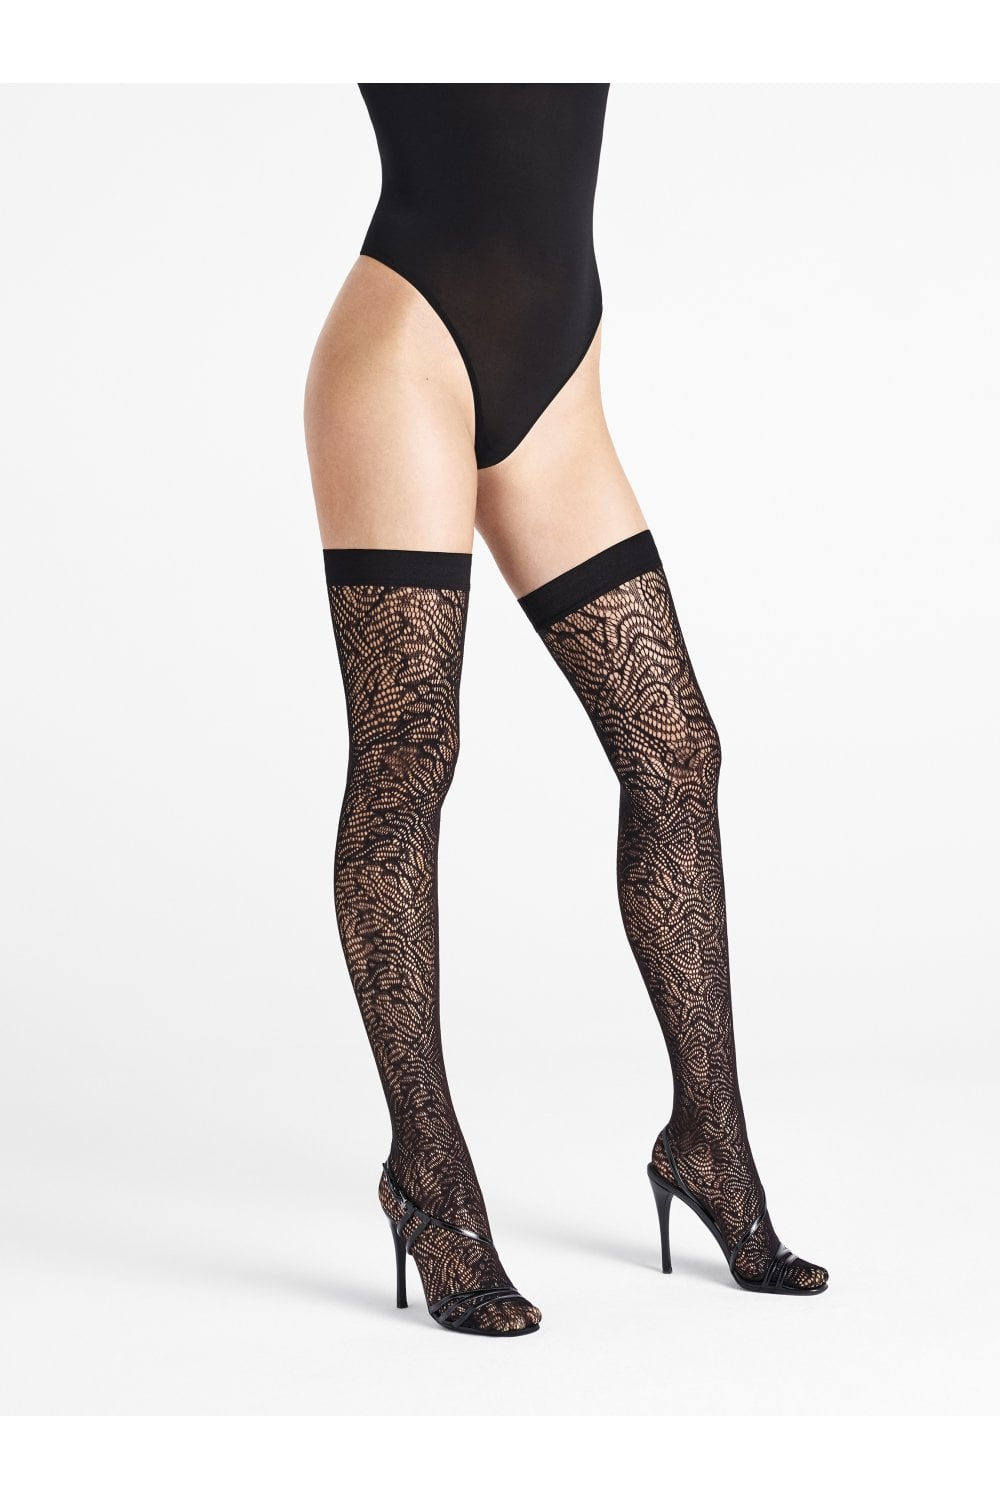 ec5ea8bcf3c Wolford True Blossom Floral Hold Ups